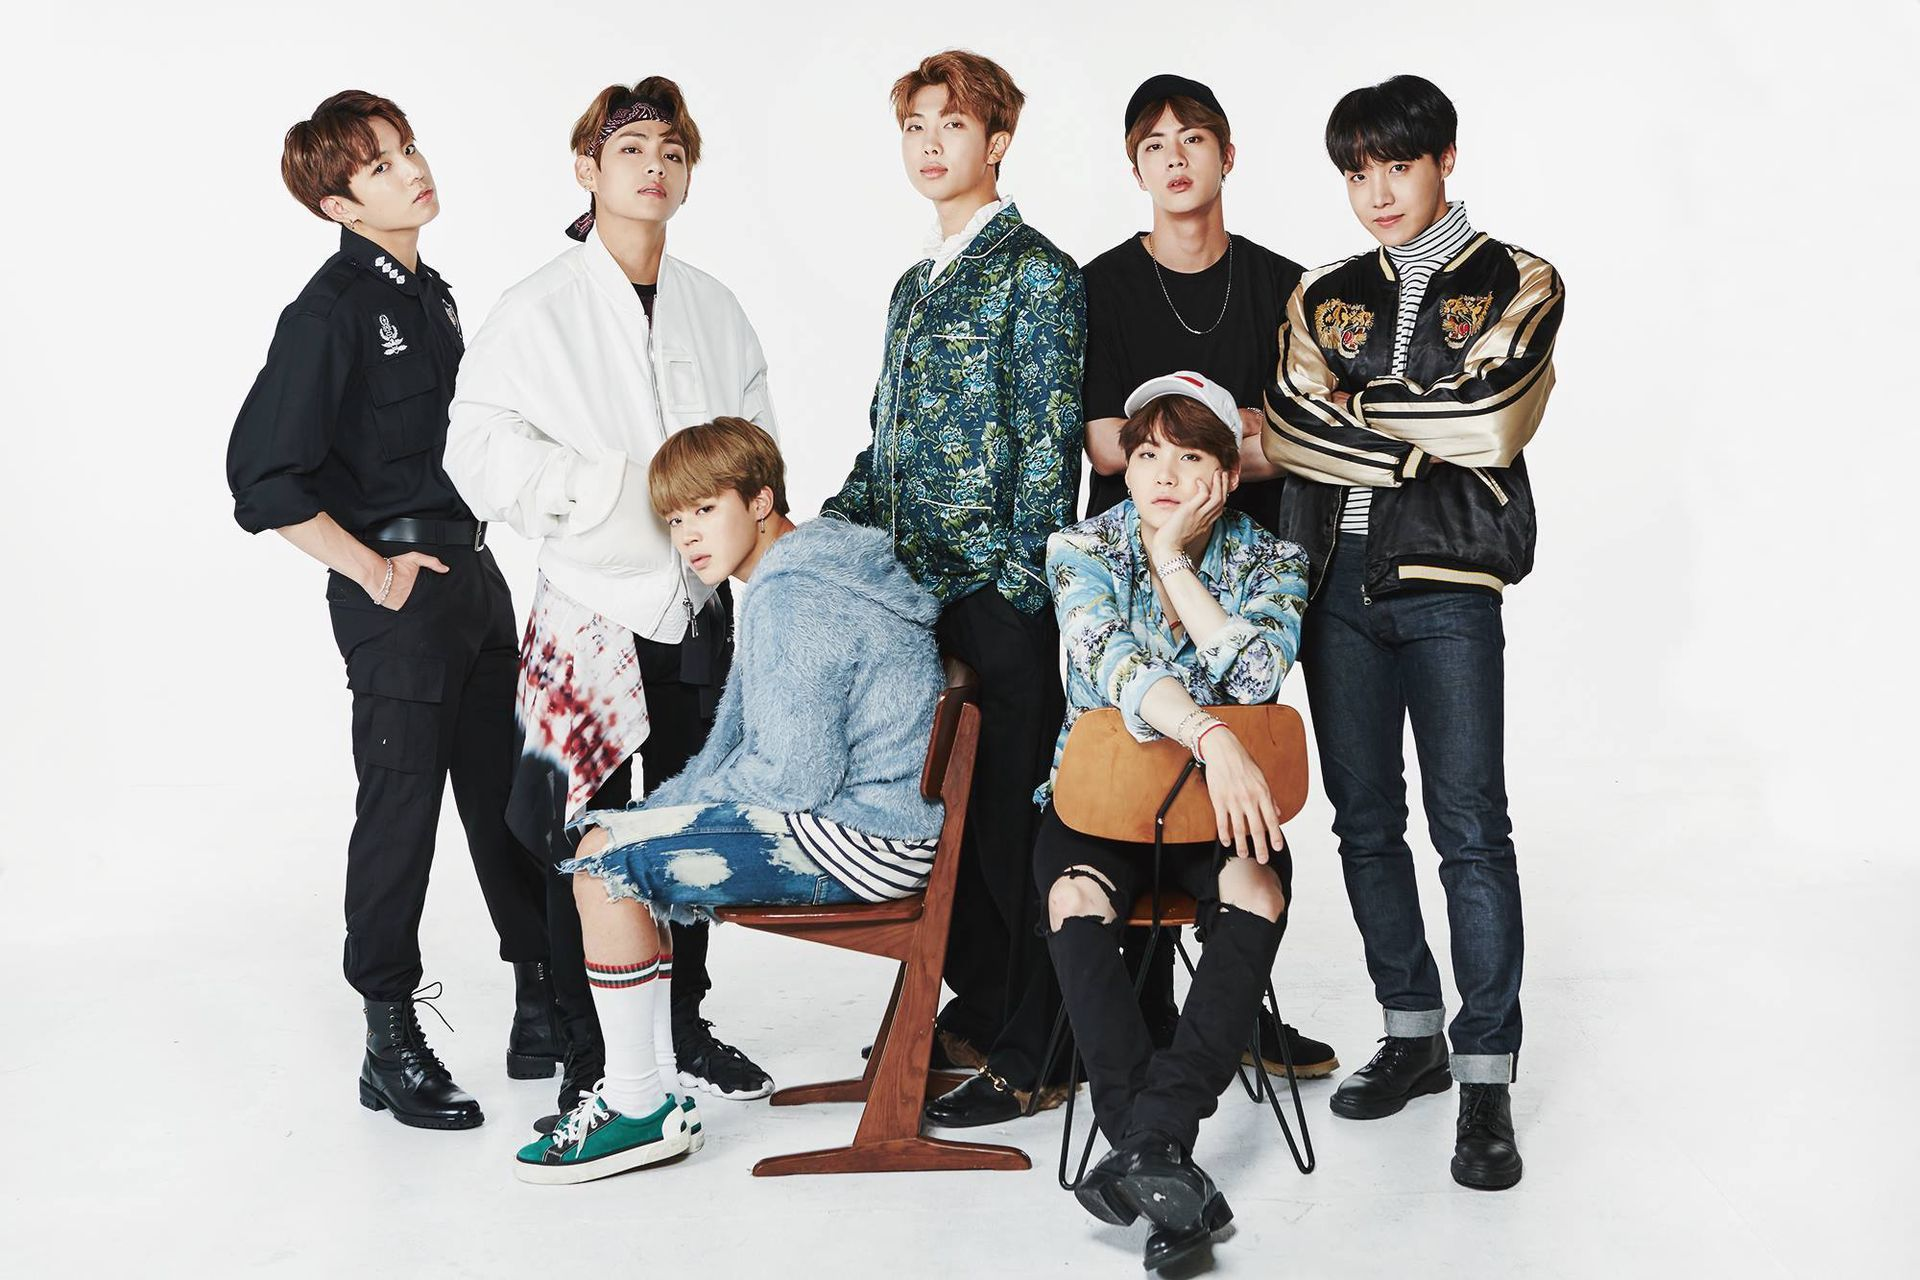 HBD Bangtan, I love you more that anything in this world